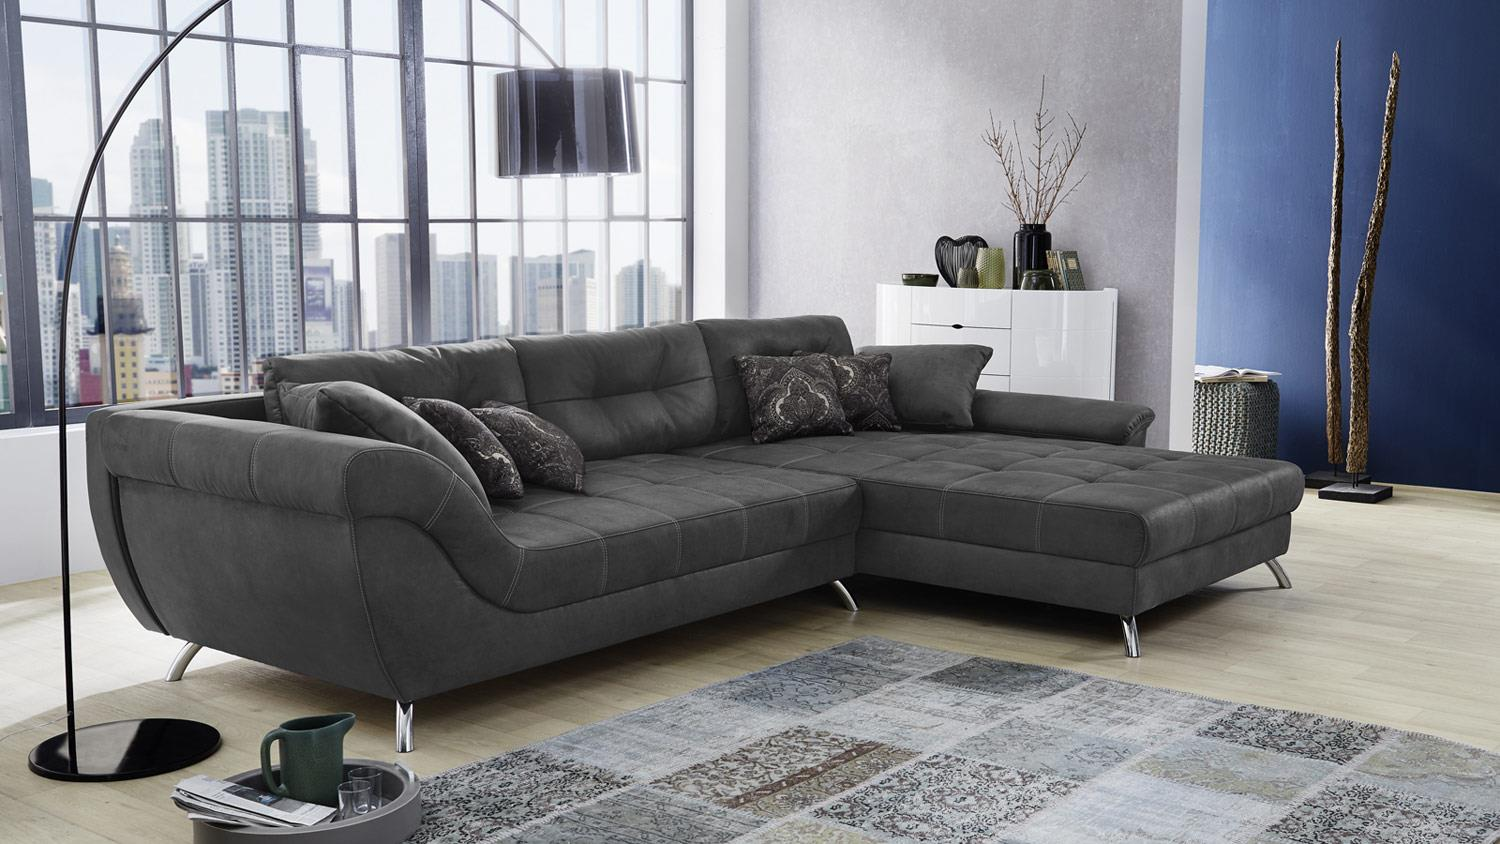 Badmöbel Antik Look Wohnlandschaft San Francisco Sofa Ecksofa Polstersofa In Antik Grau